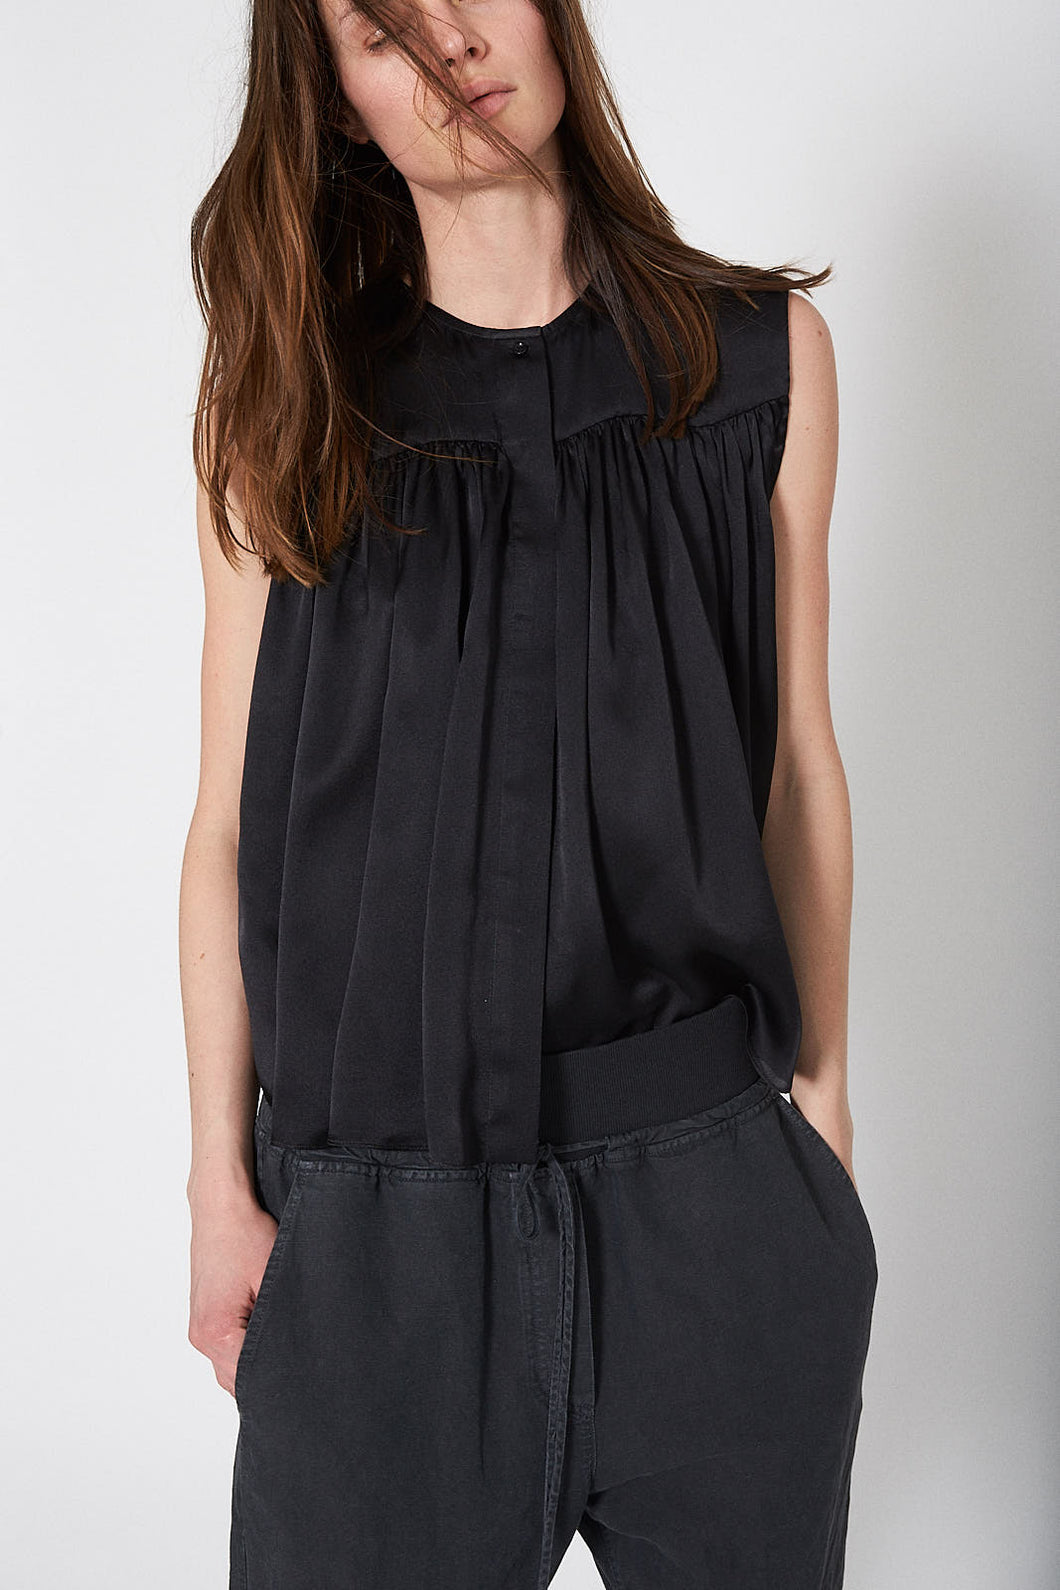 KES Ruched Sleeveless Blouse  - Black